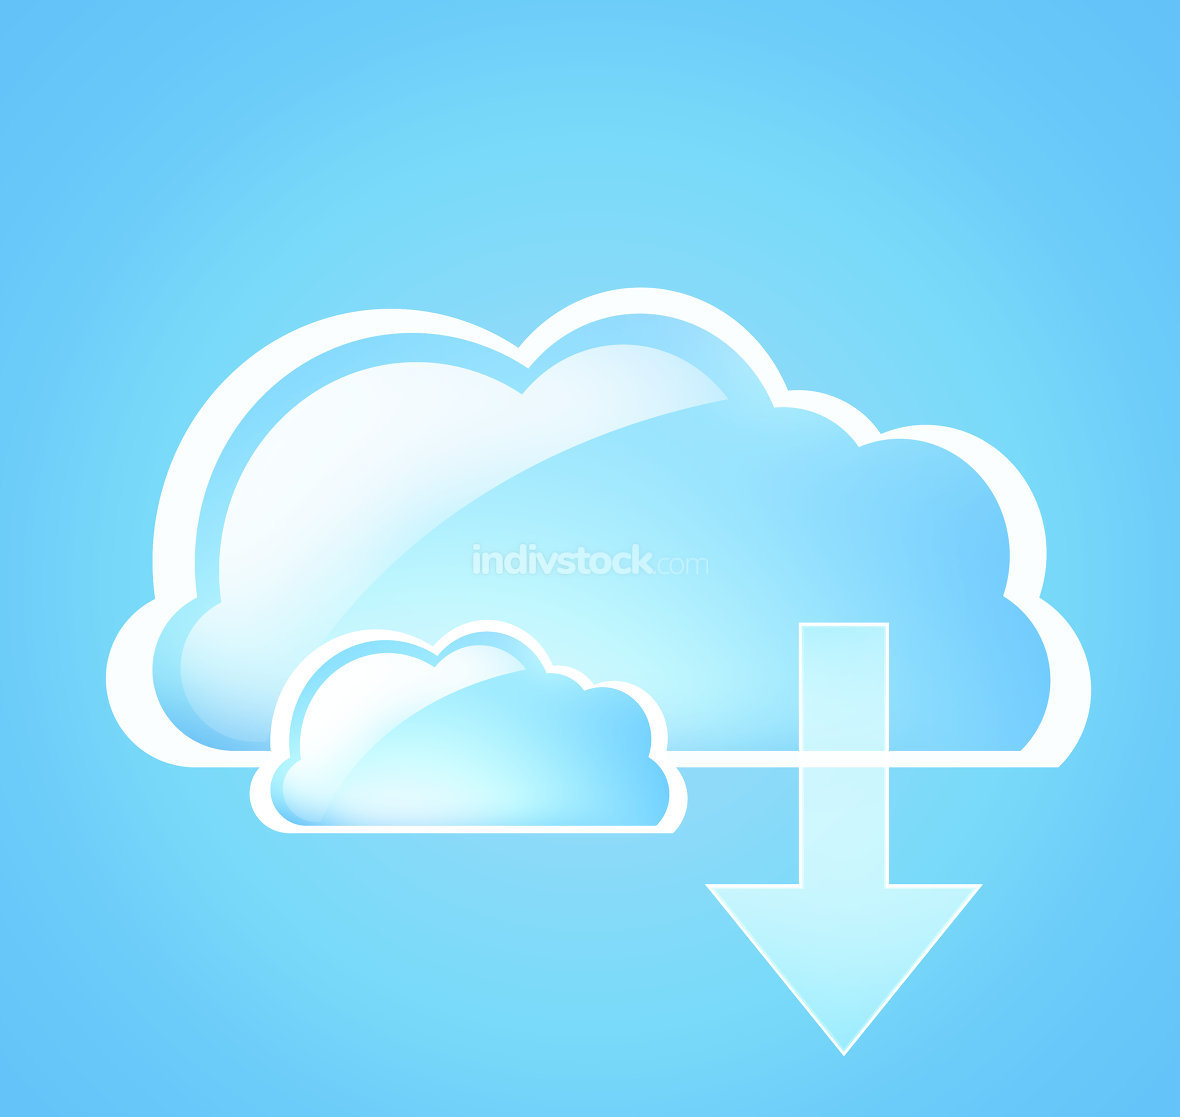 free download: cloud computing